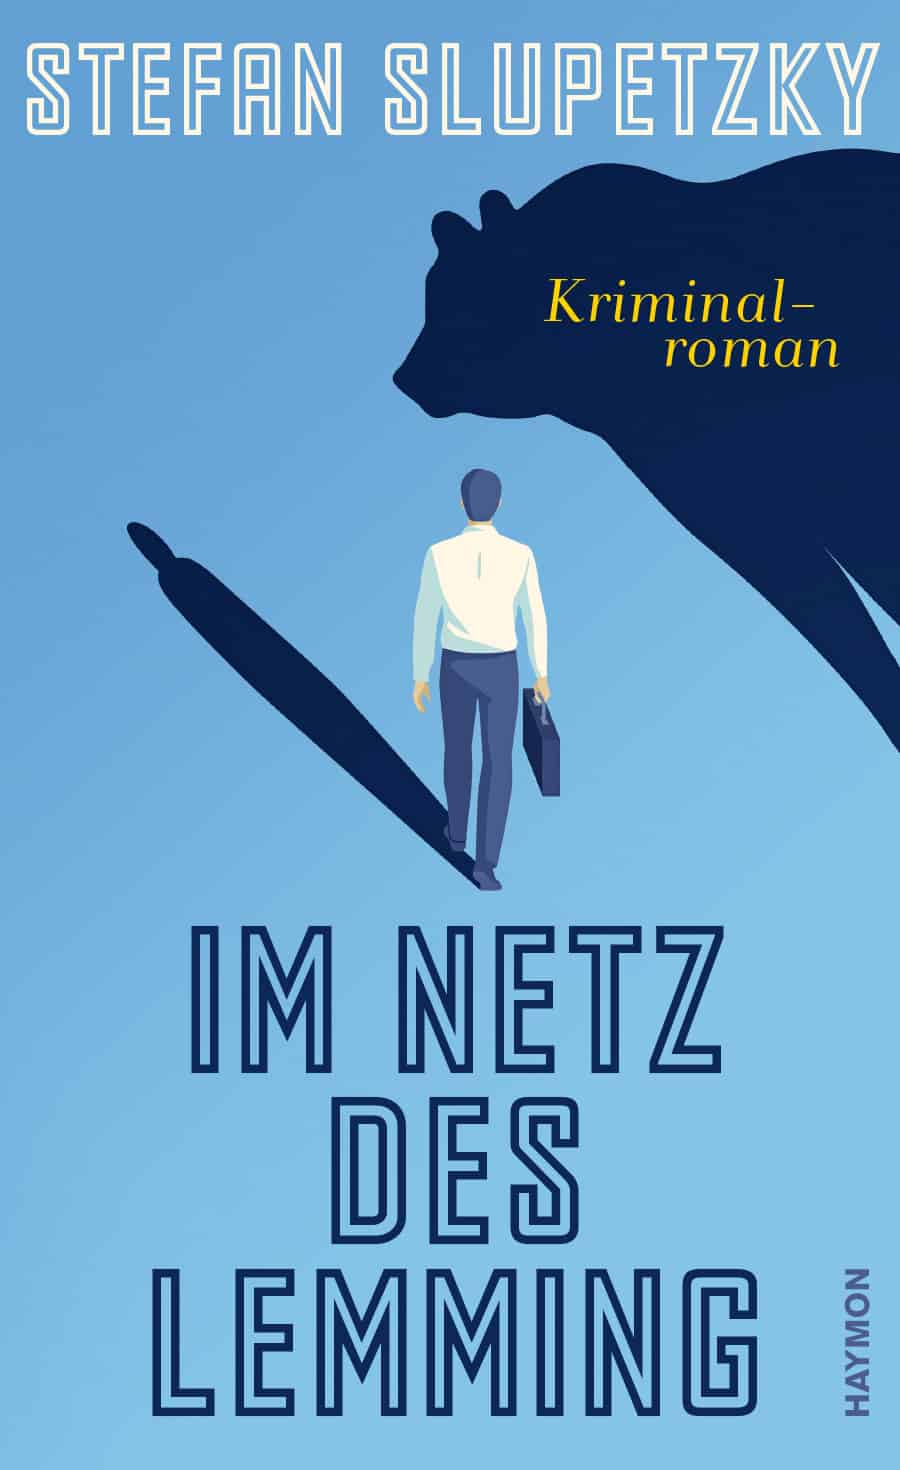 https://www.haymonverlag.at/?s=im+netz+des+lemming